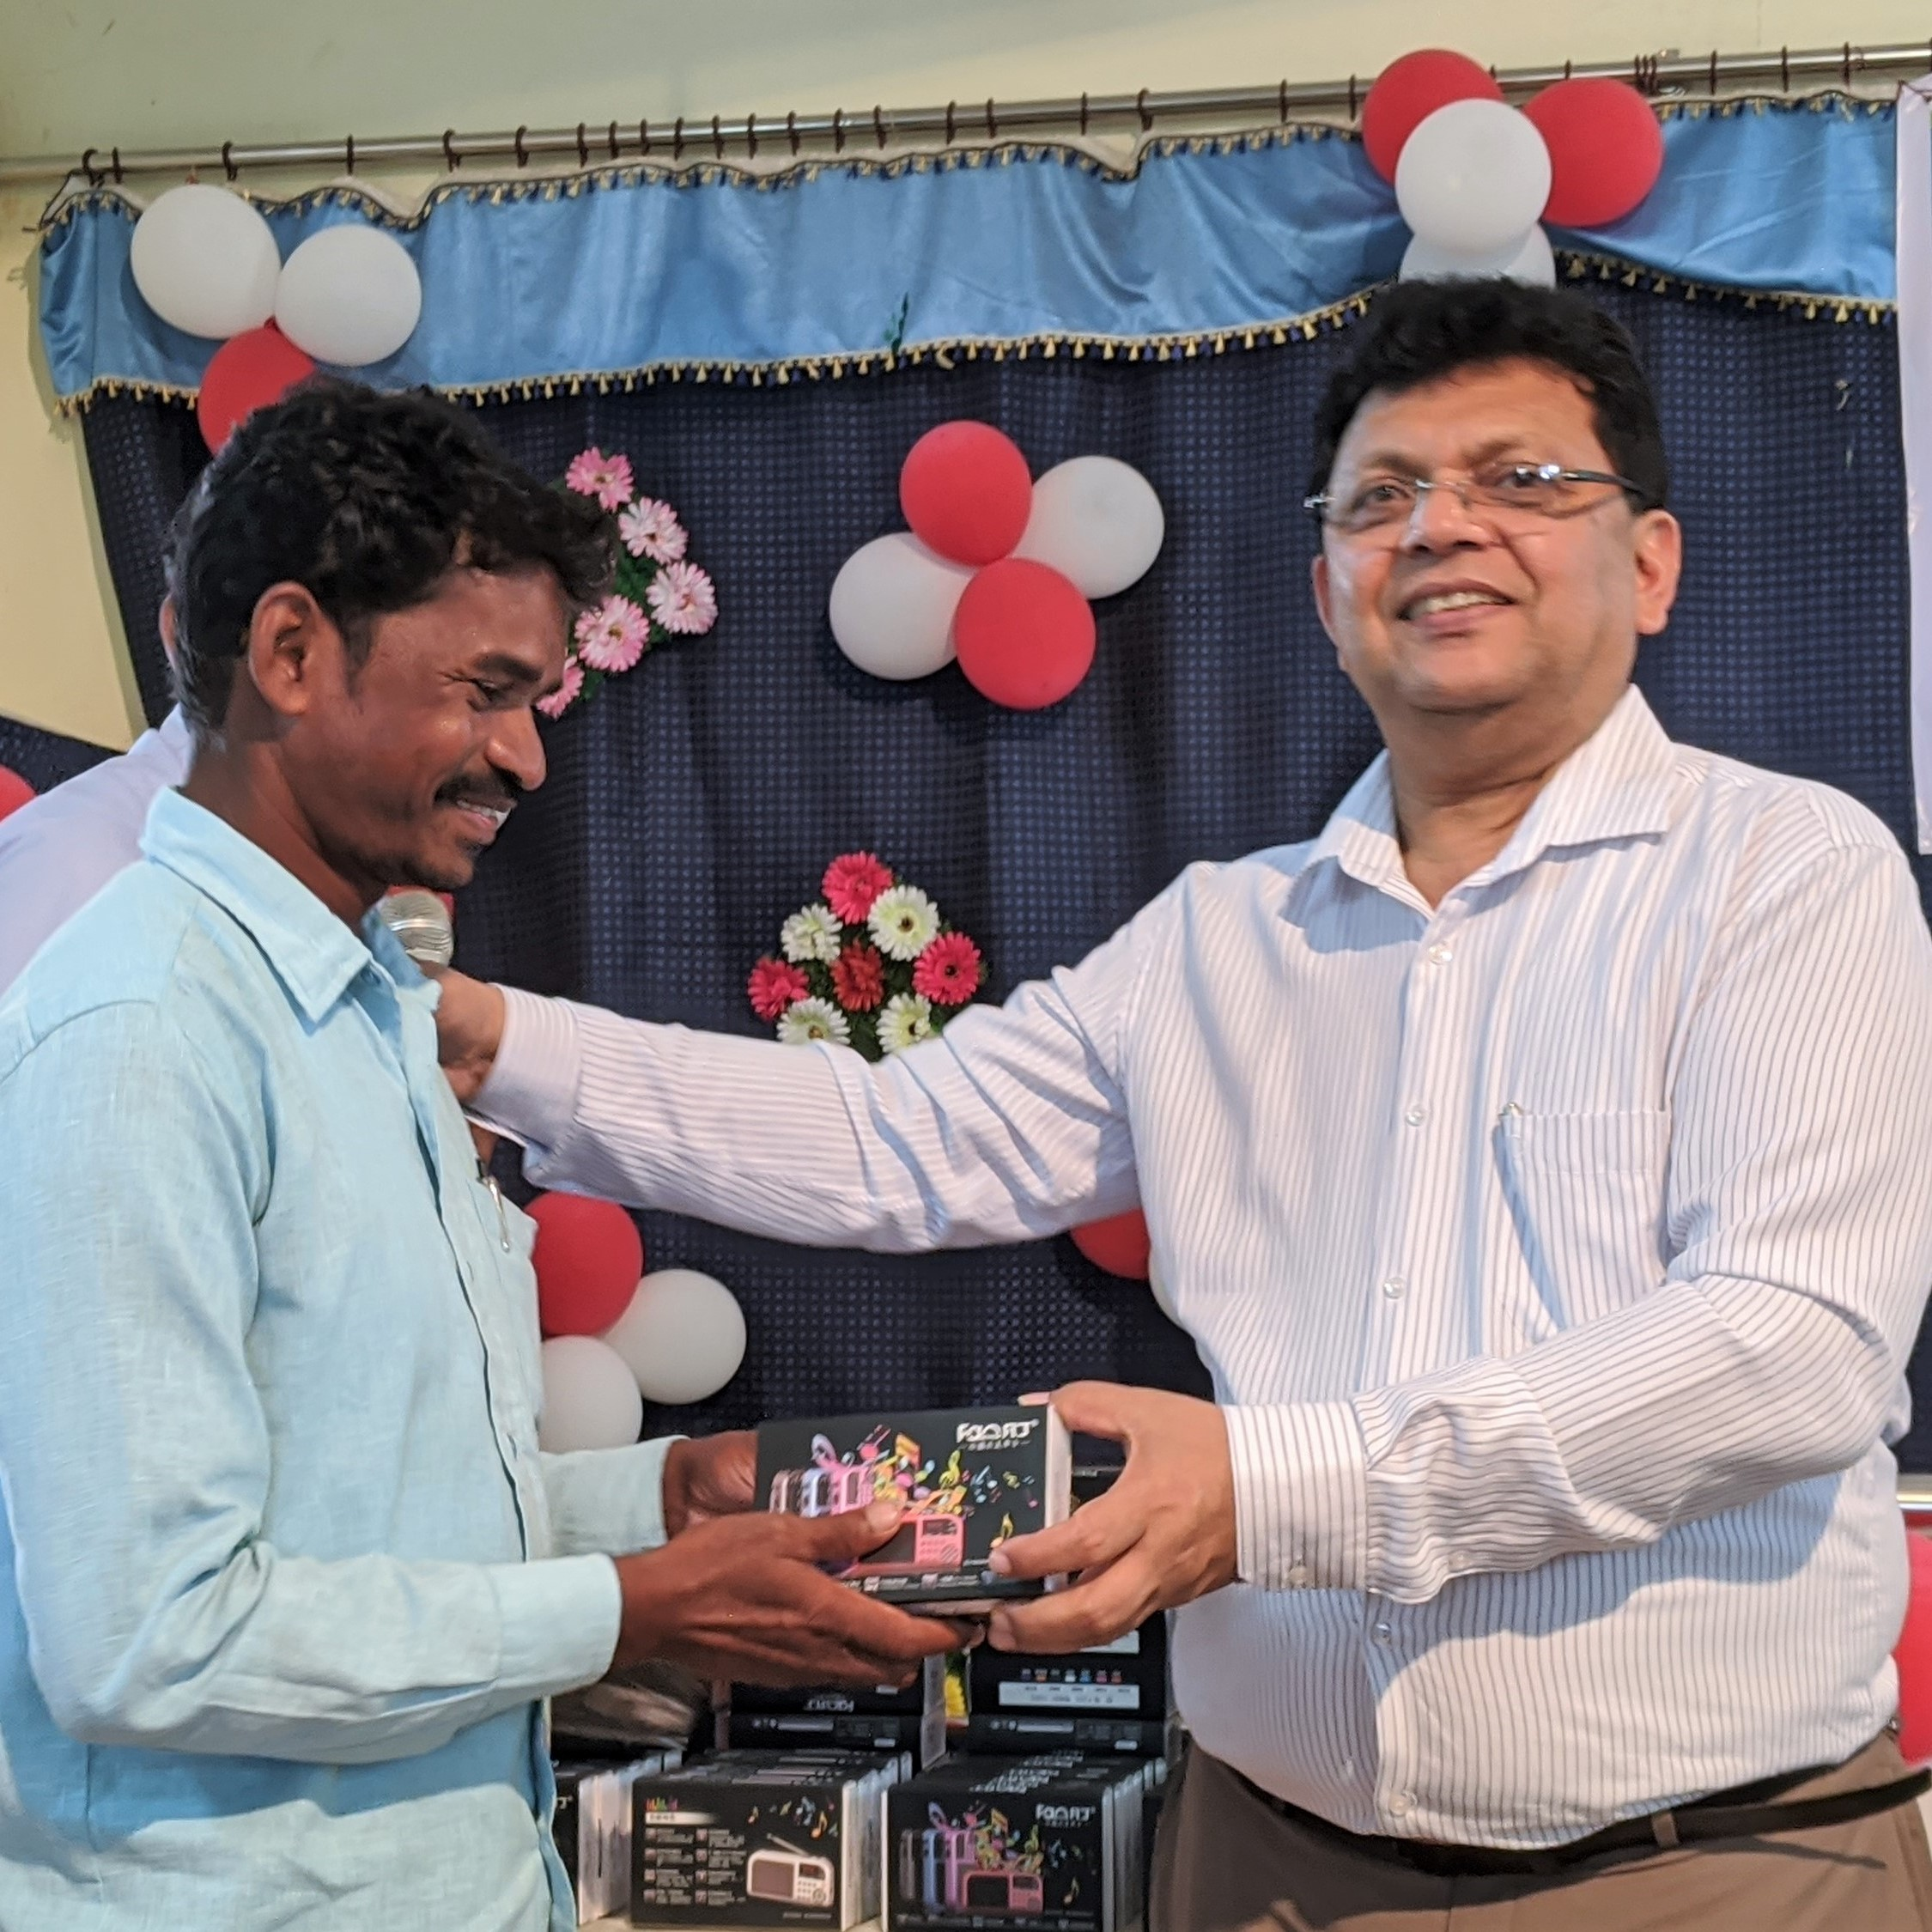 TWR India's George Philip gives a media player to a radio home group leader